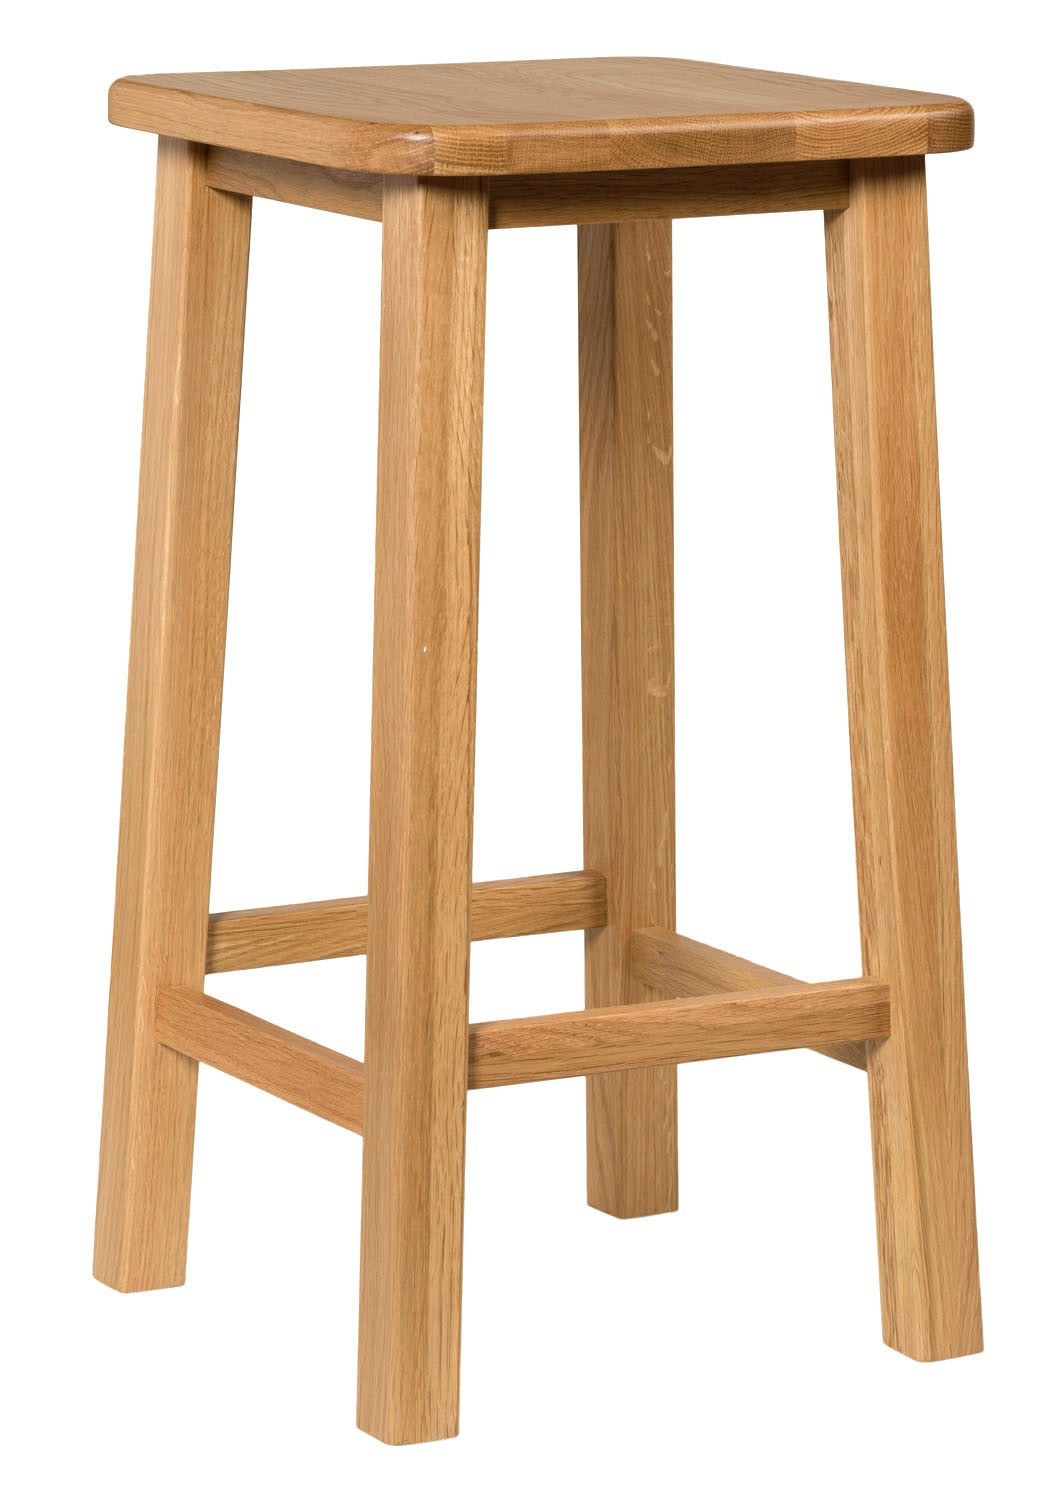 Wooden Waverly Breakfast Bar Stool Stylish Amp Practical